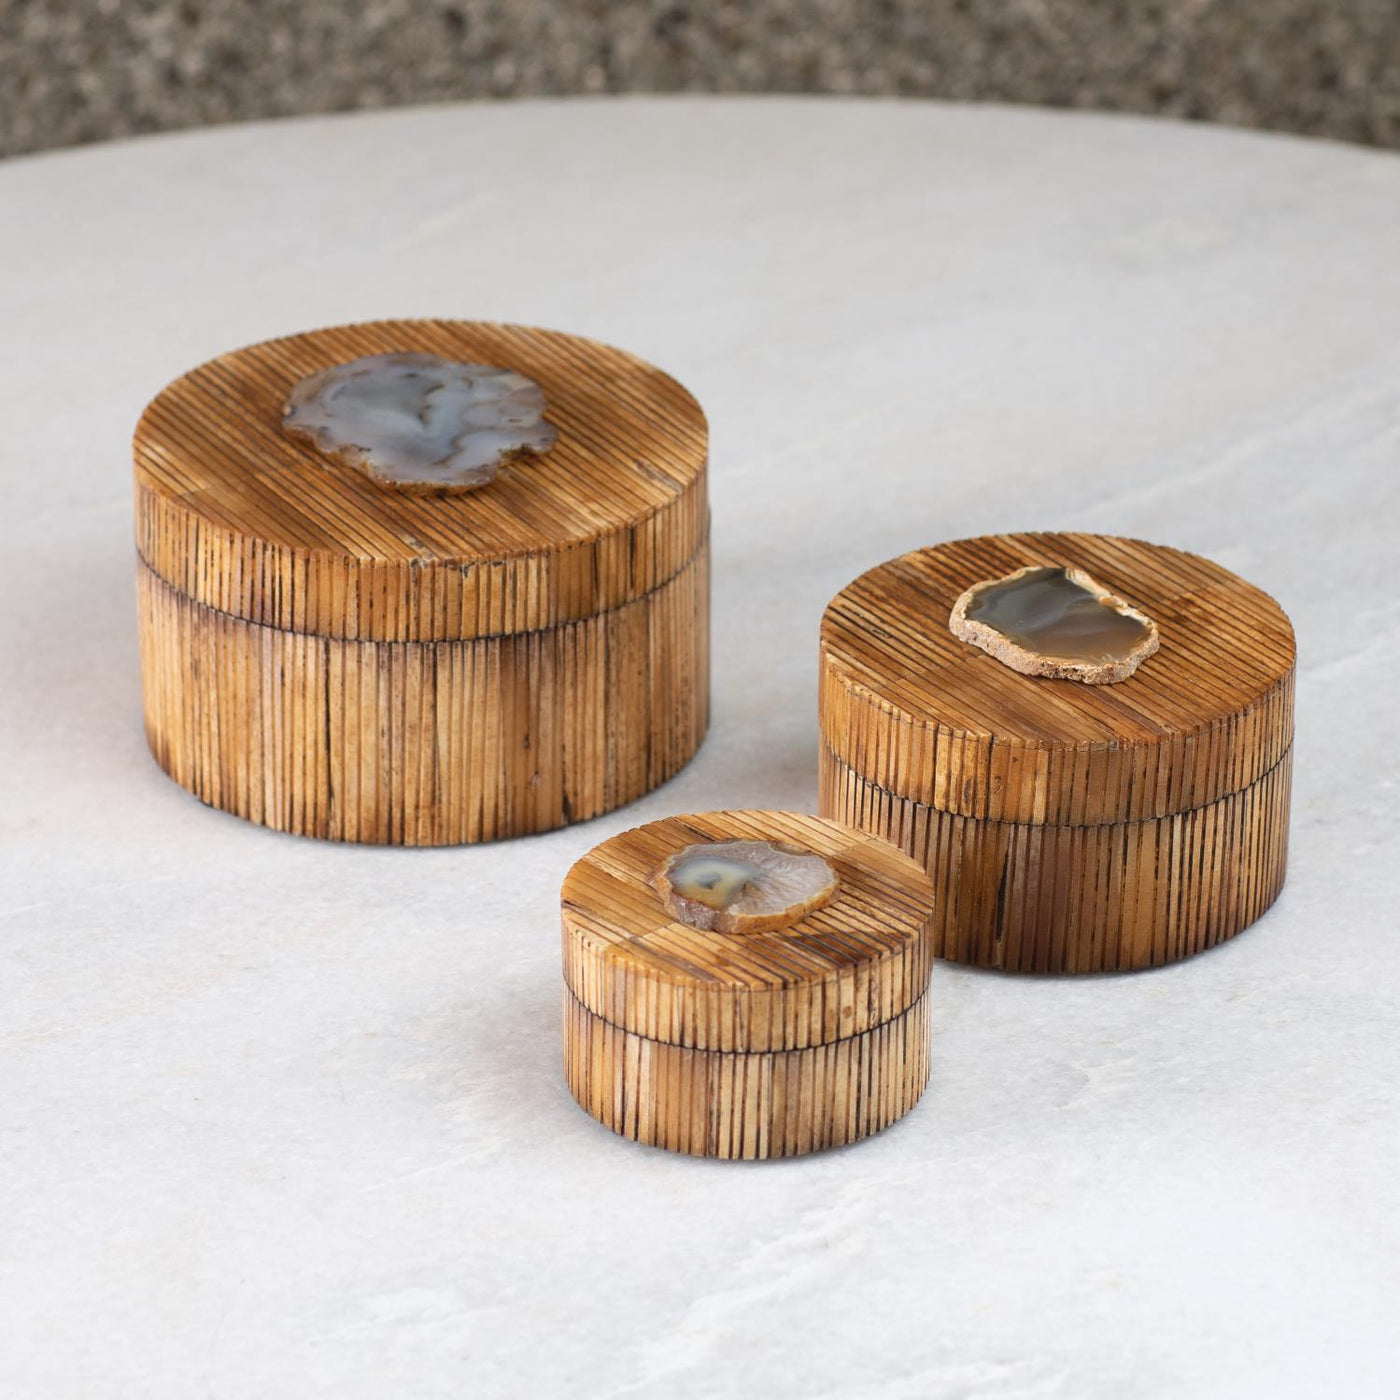 Bone and Agate Boxes